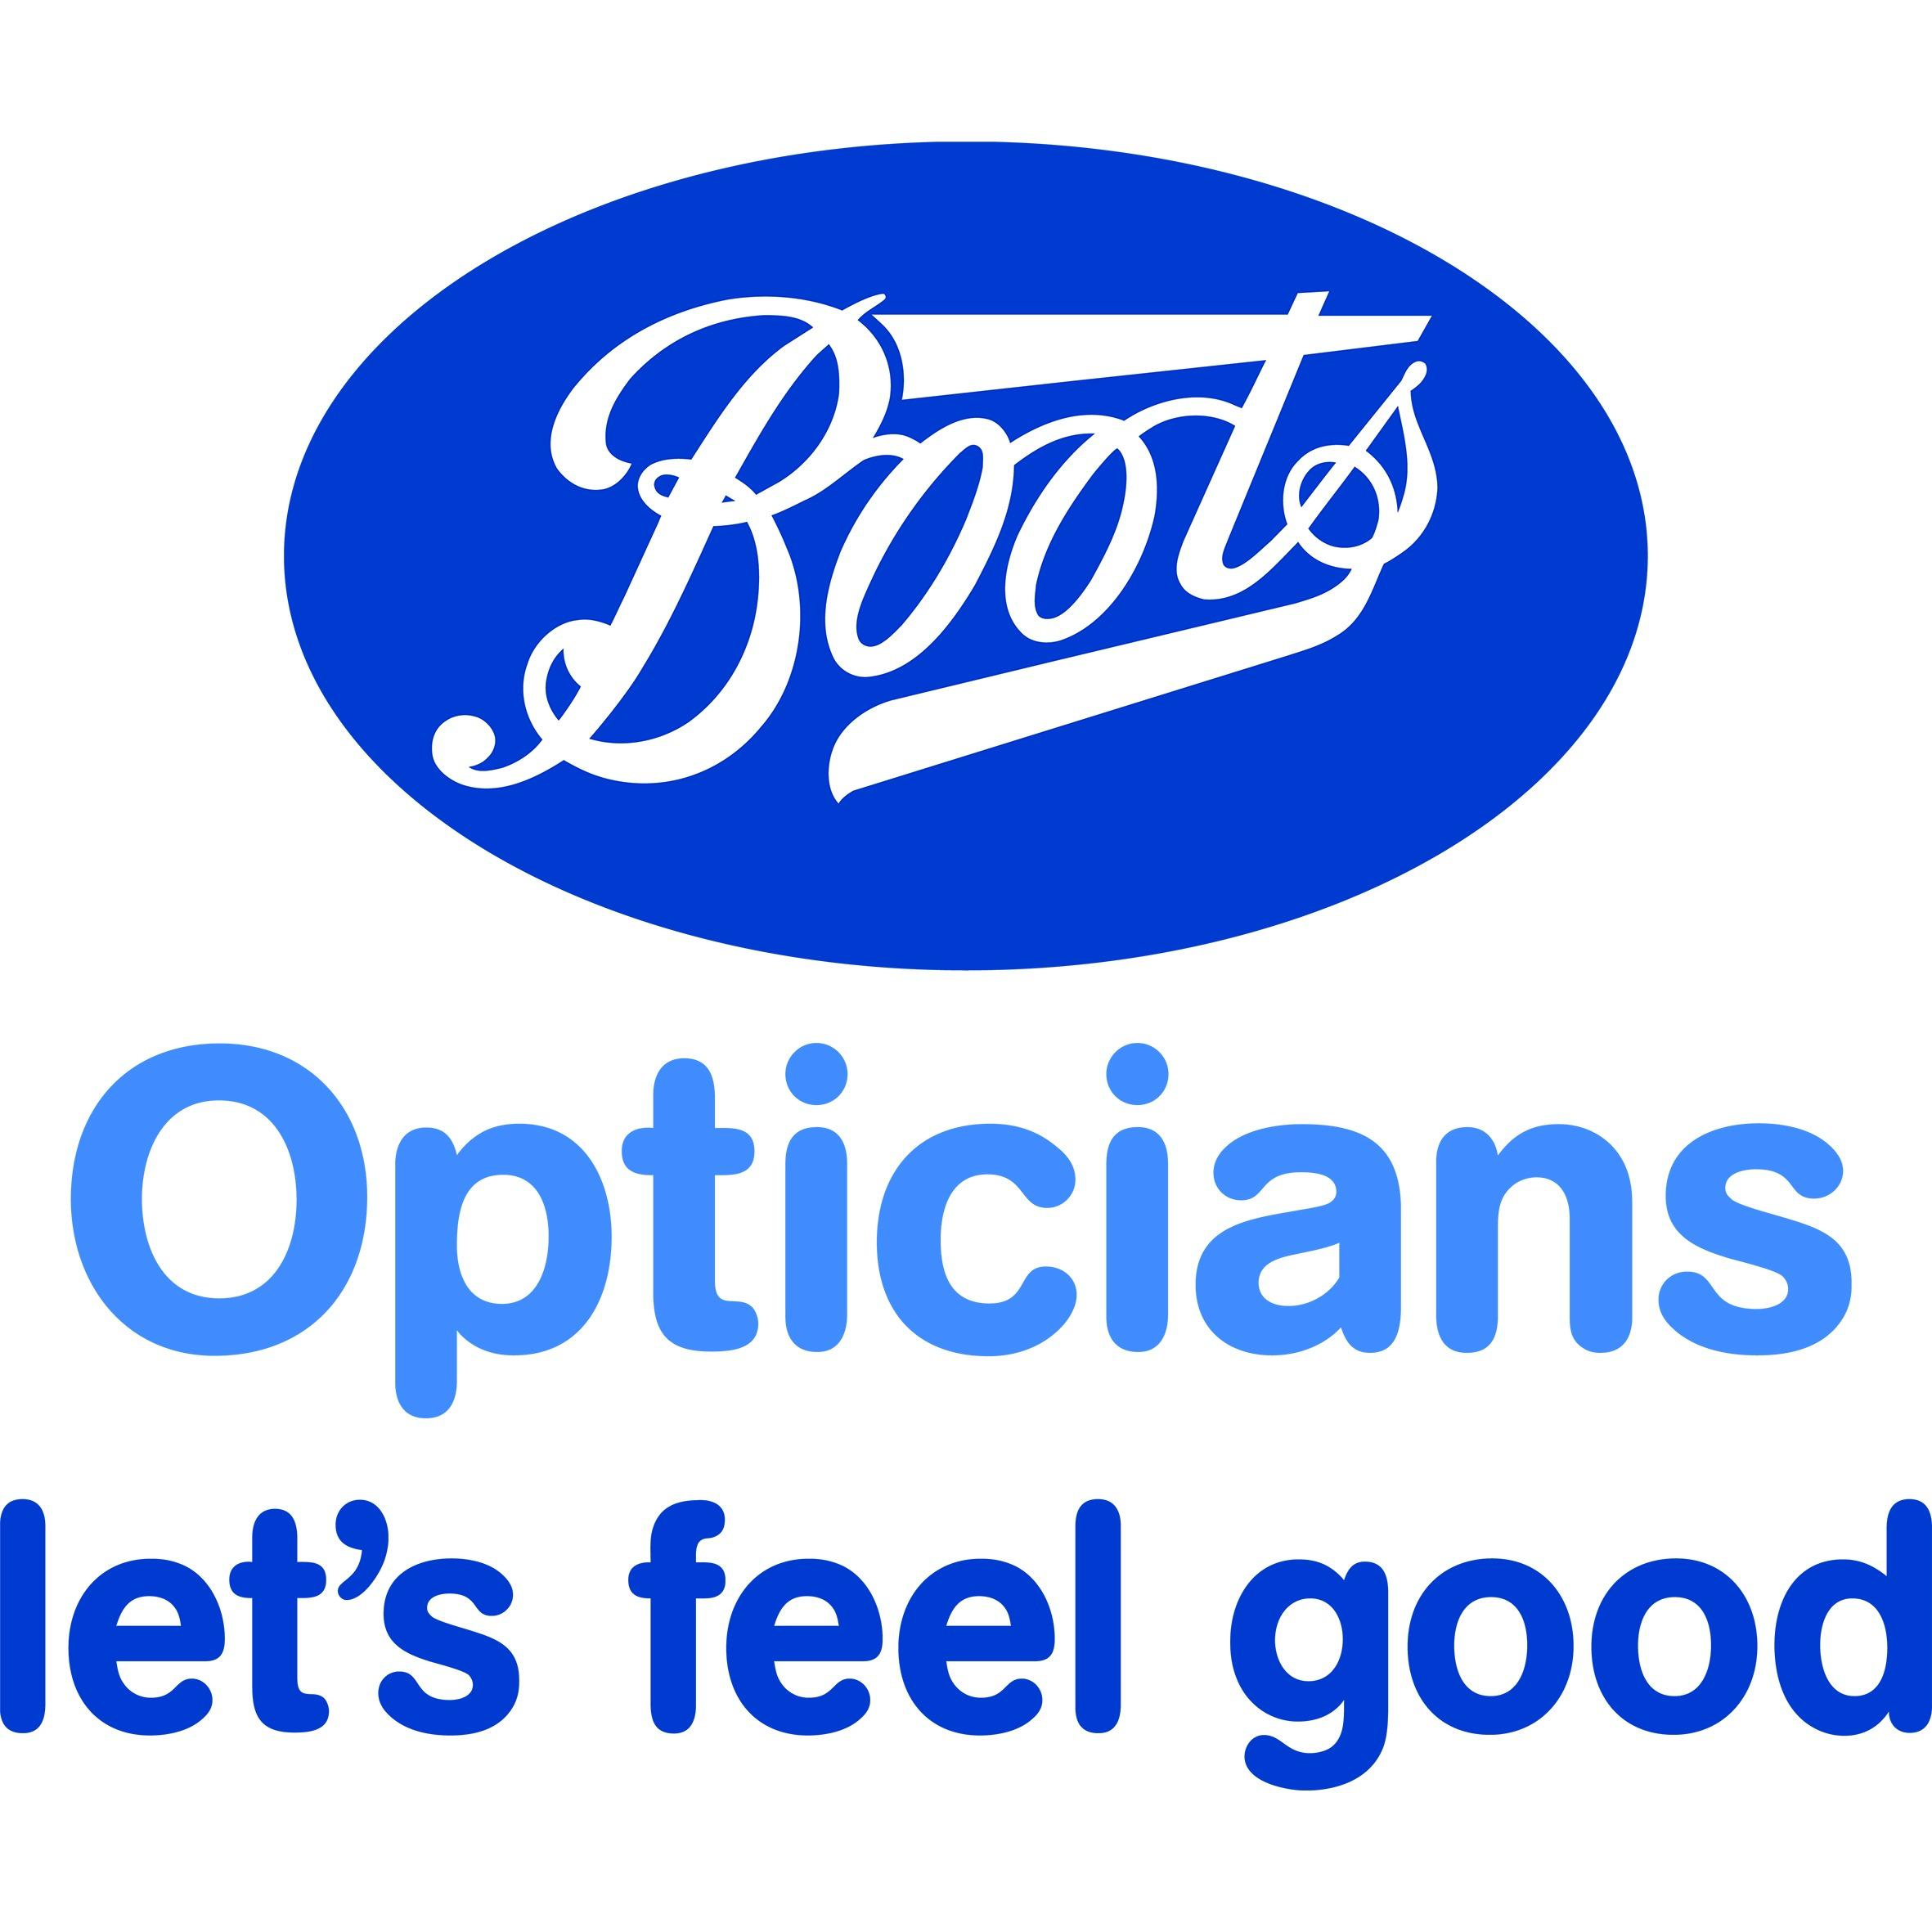 Boots Opticians - Cheltenham, Gloucestershire GL50 1DB - 03451 253776 | ShowMeLocal.com